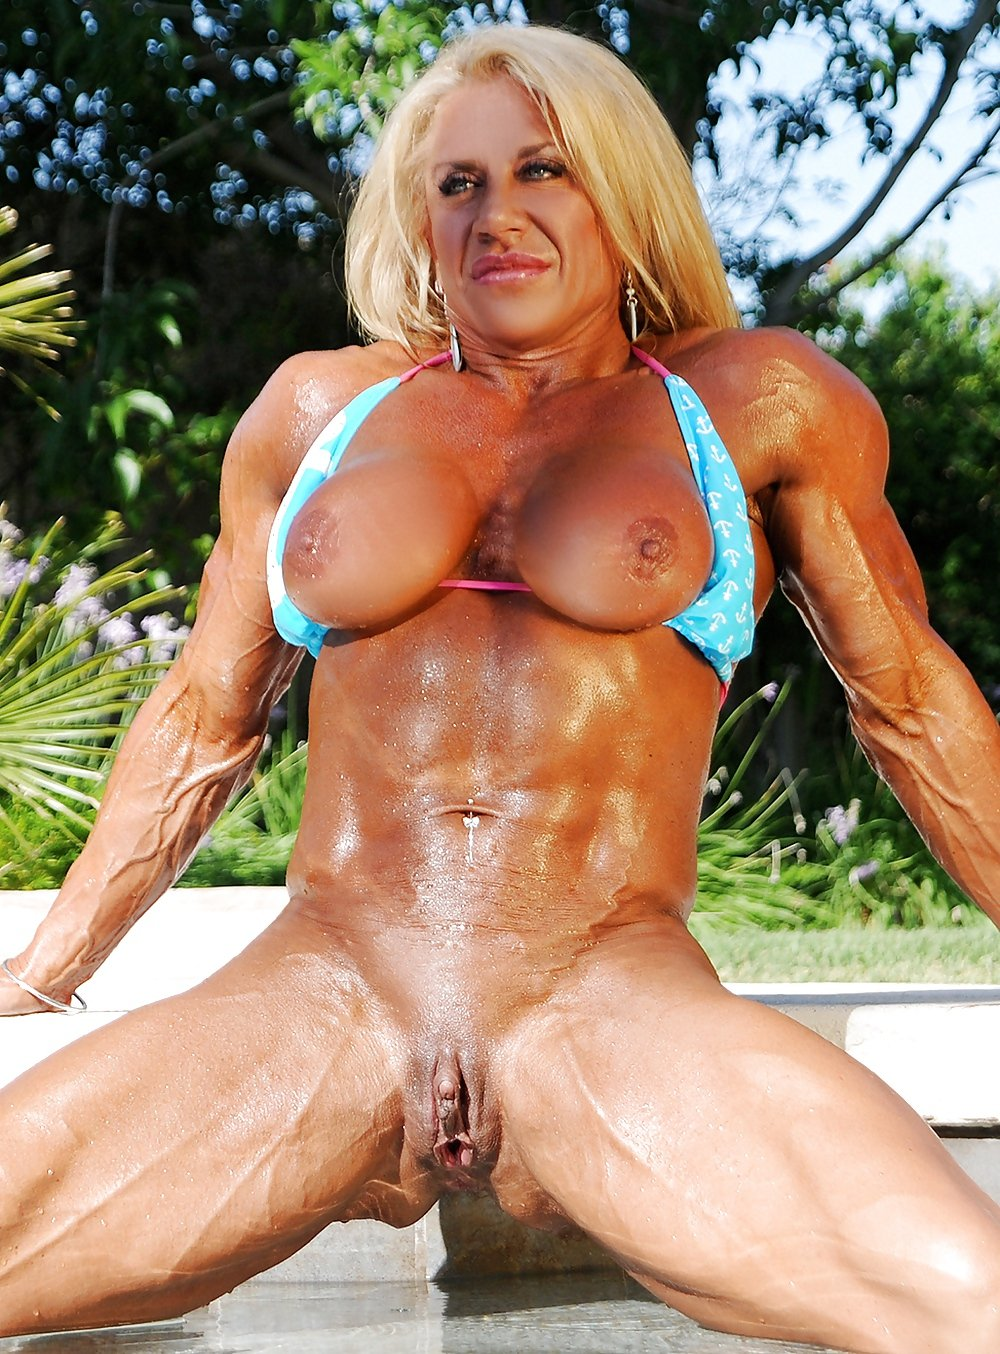 female-bodybuilder-porn-video-gallary-naked